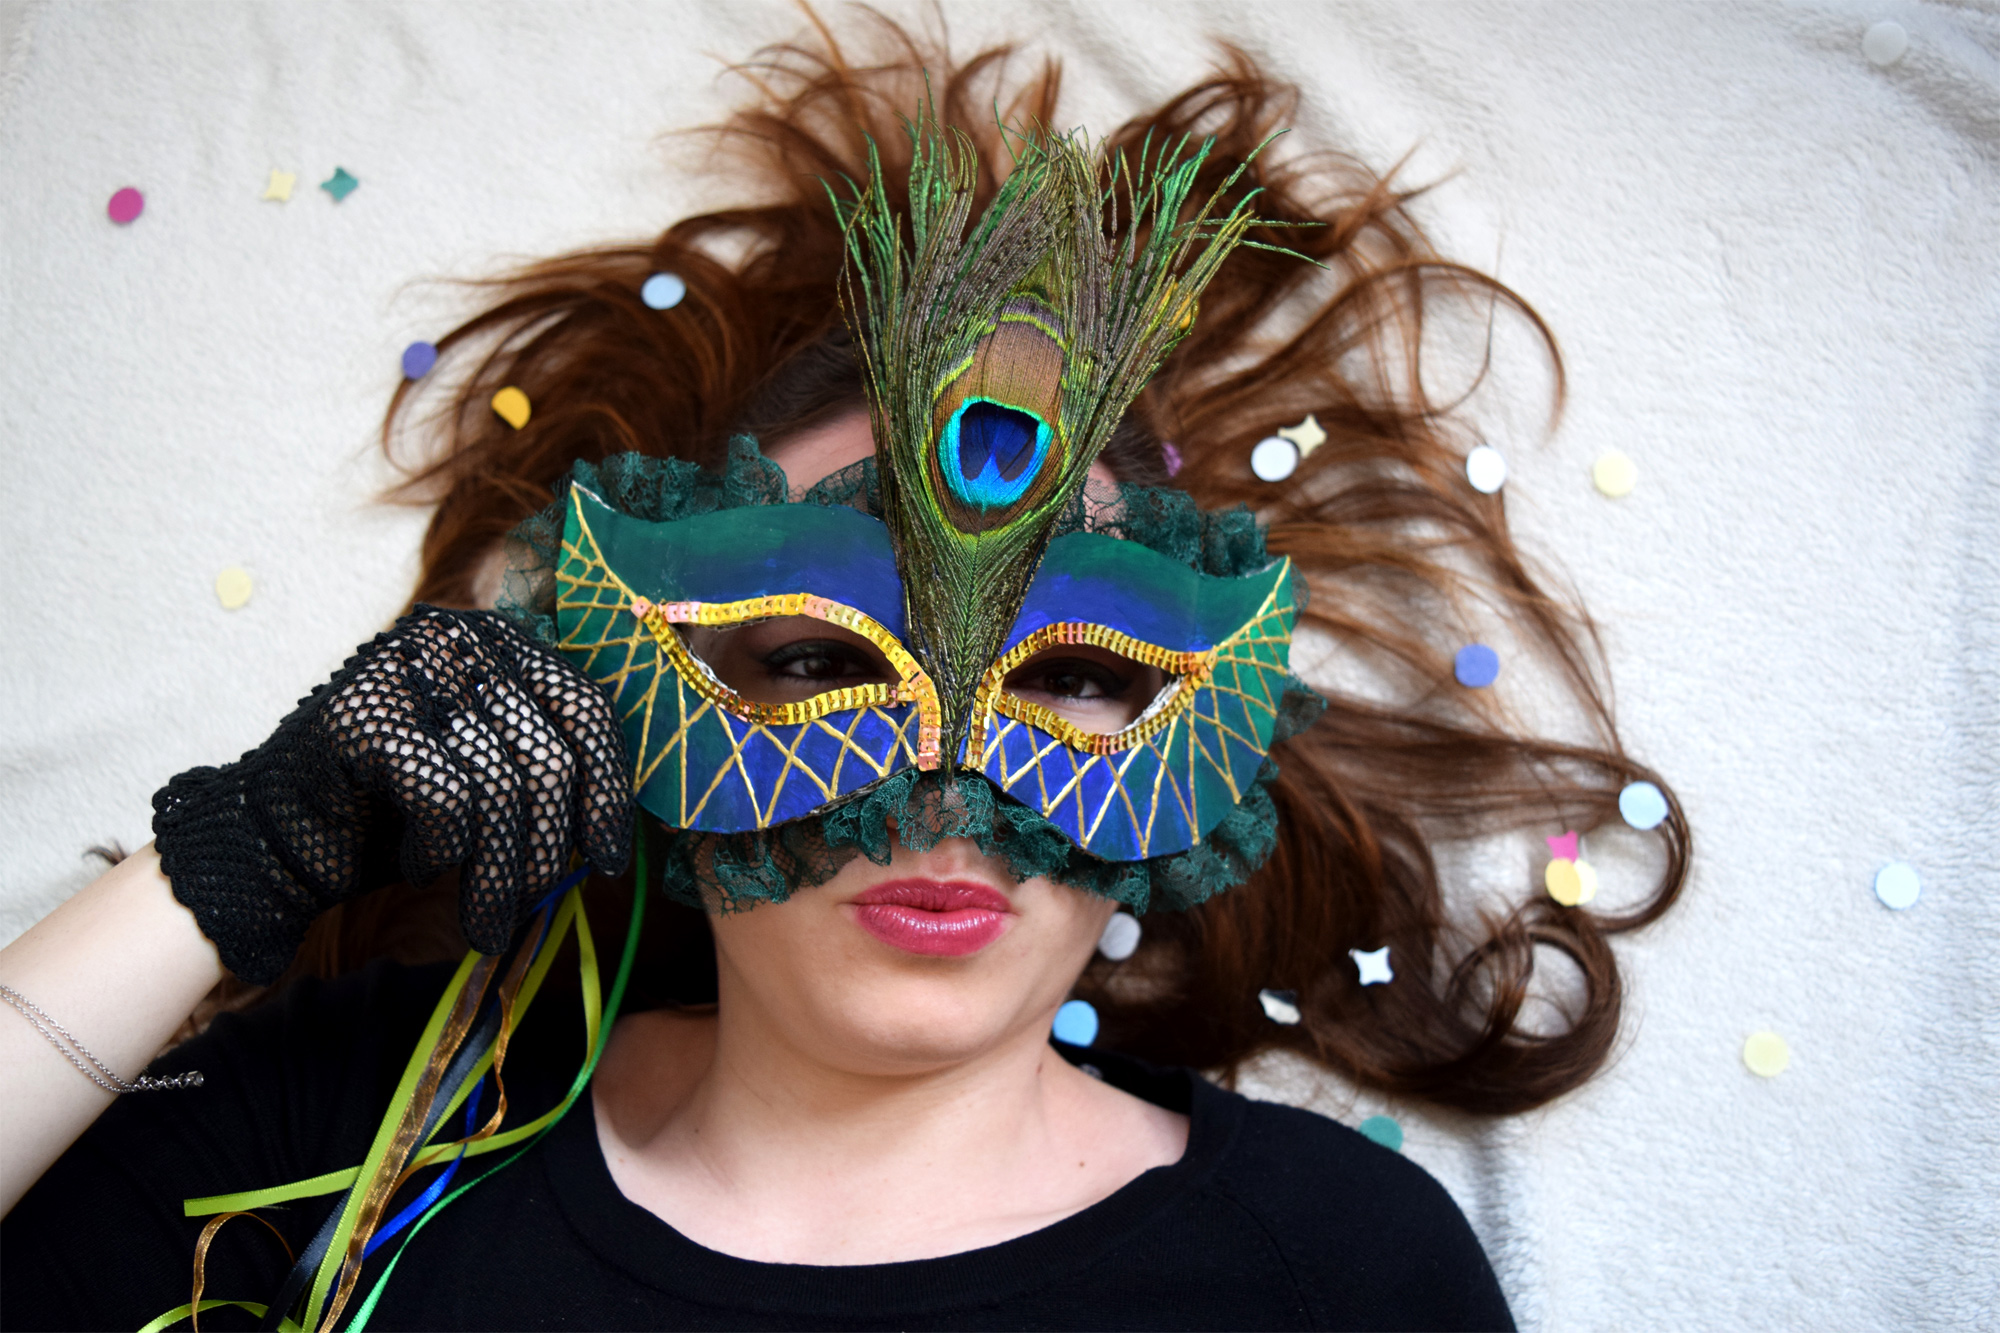 Giulia modelling the Peacock mask